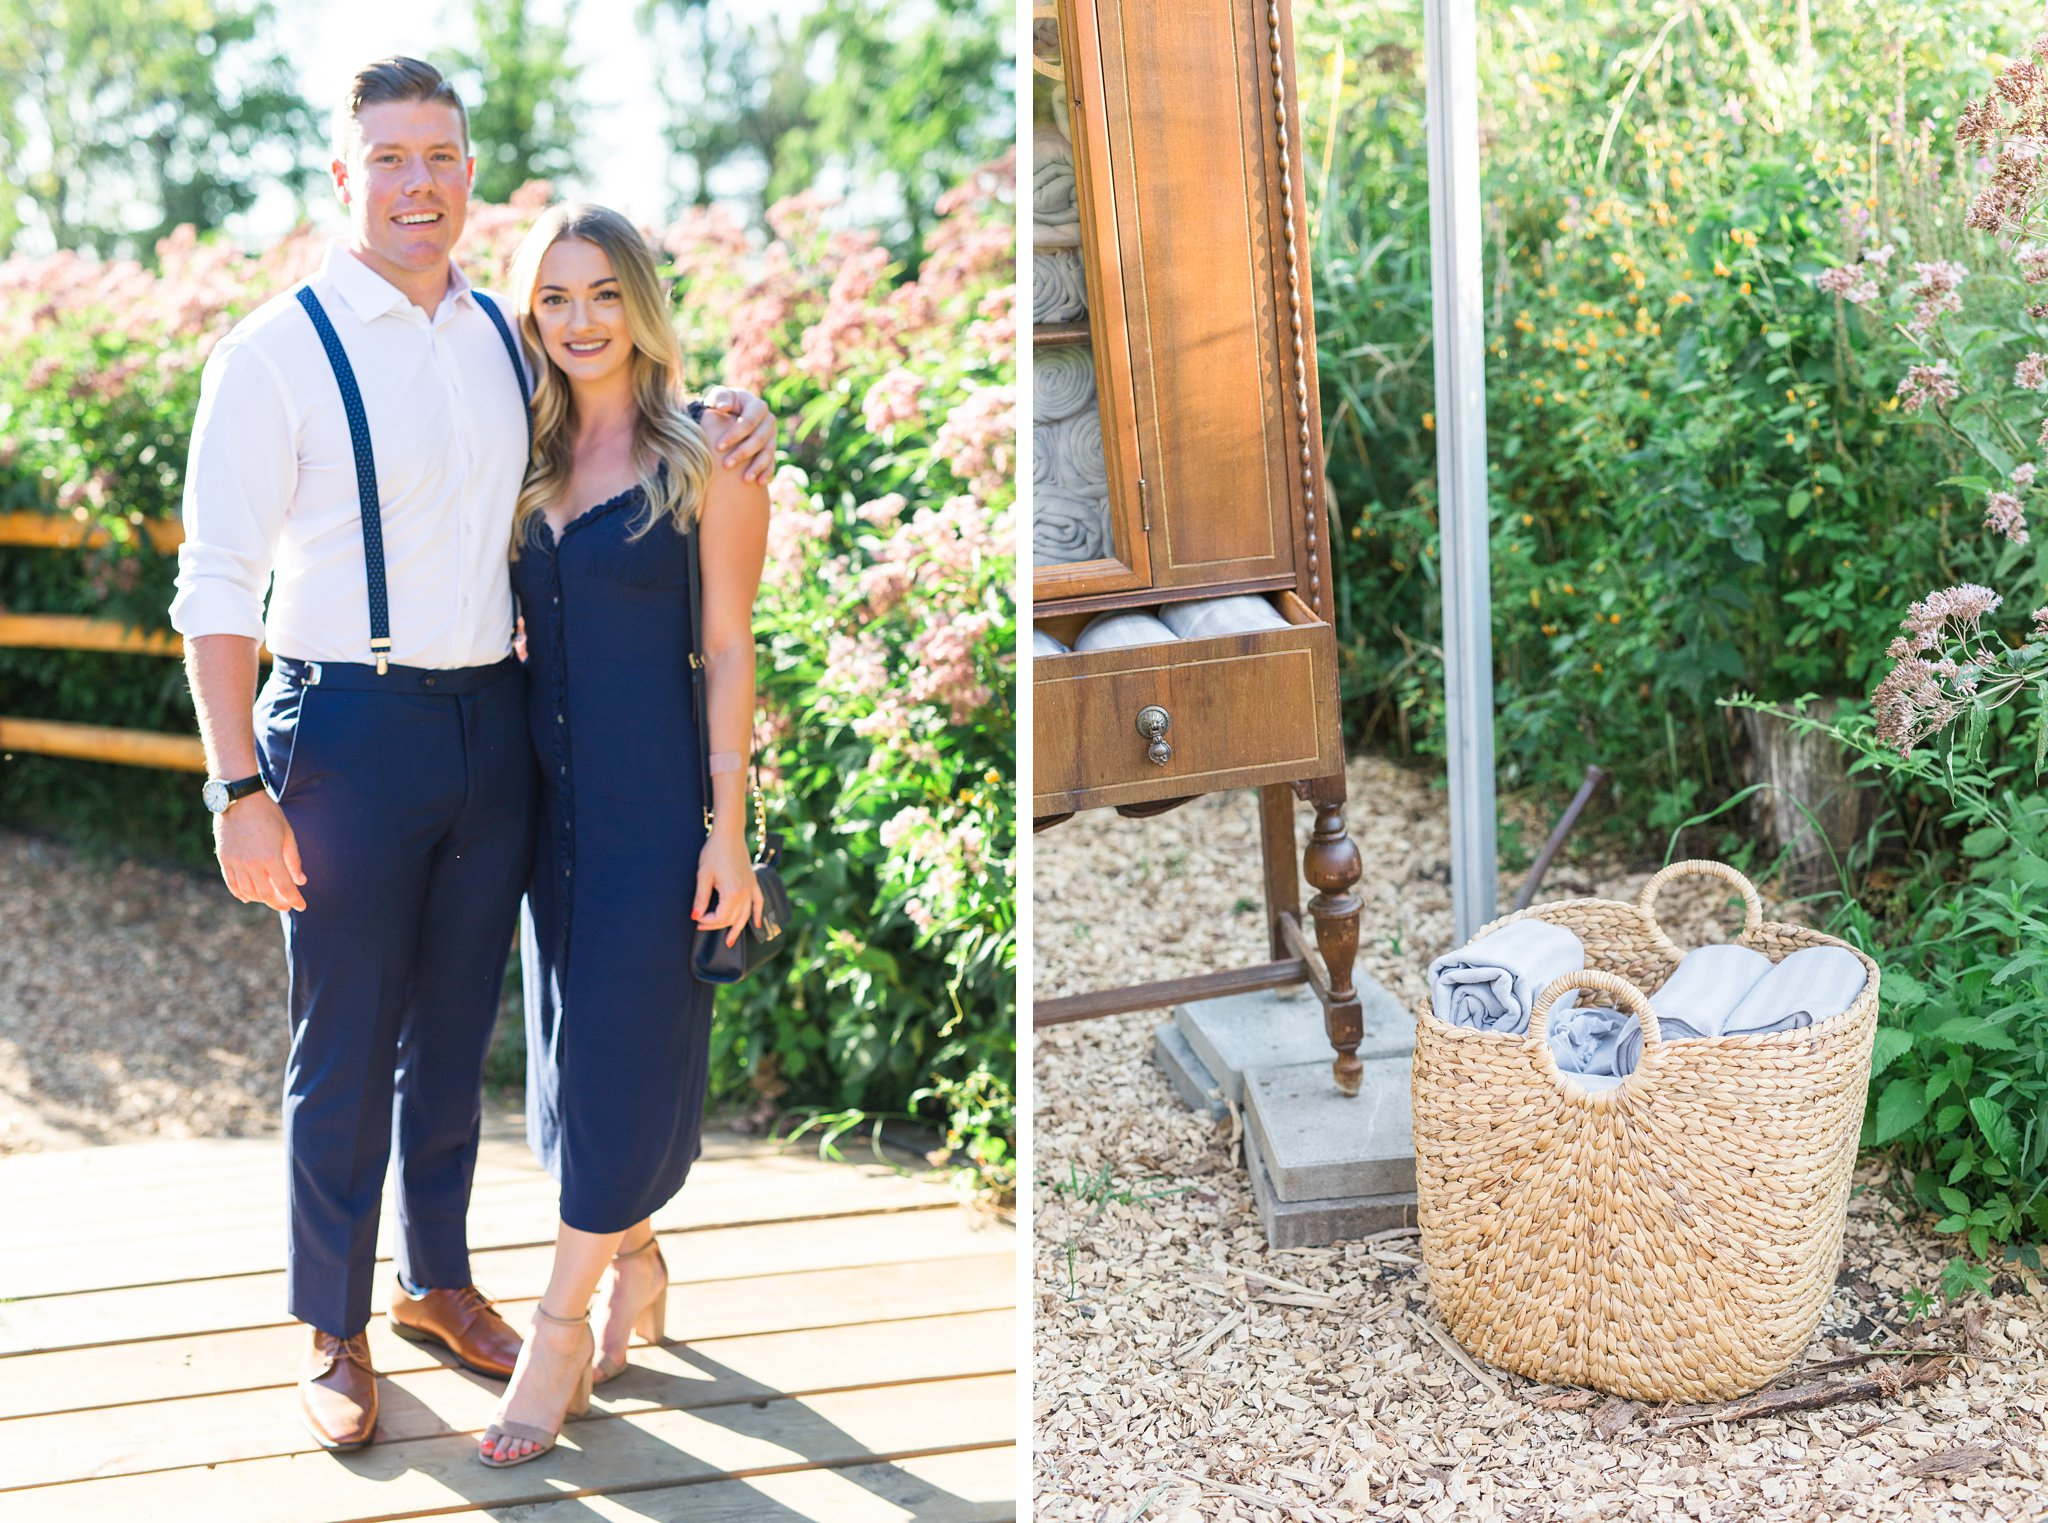 Blankets wedding favour, Private Estate Wedding Photos, Amy Pinder Photography